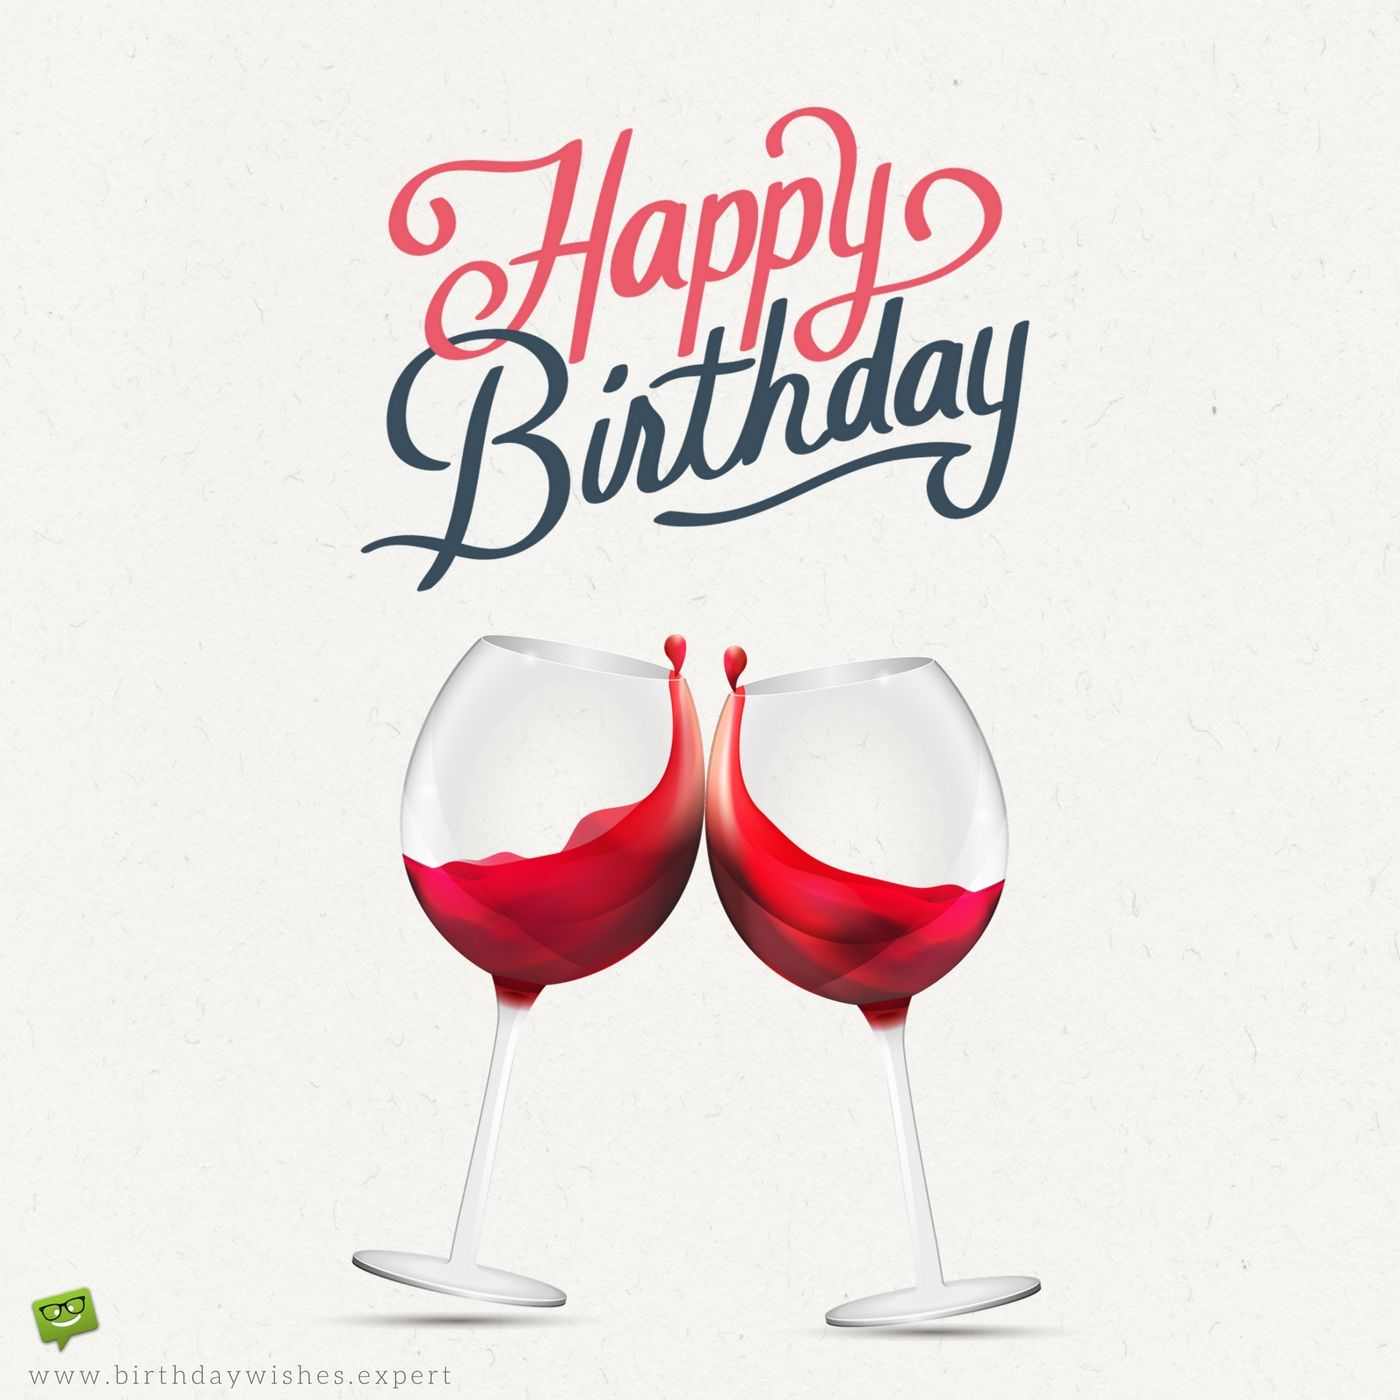 Original Birthday Quotes For Your Husband Birthday Wishes Funny